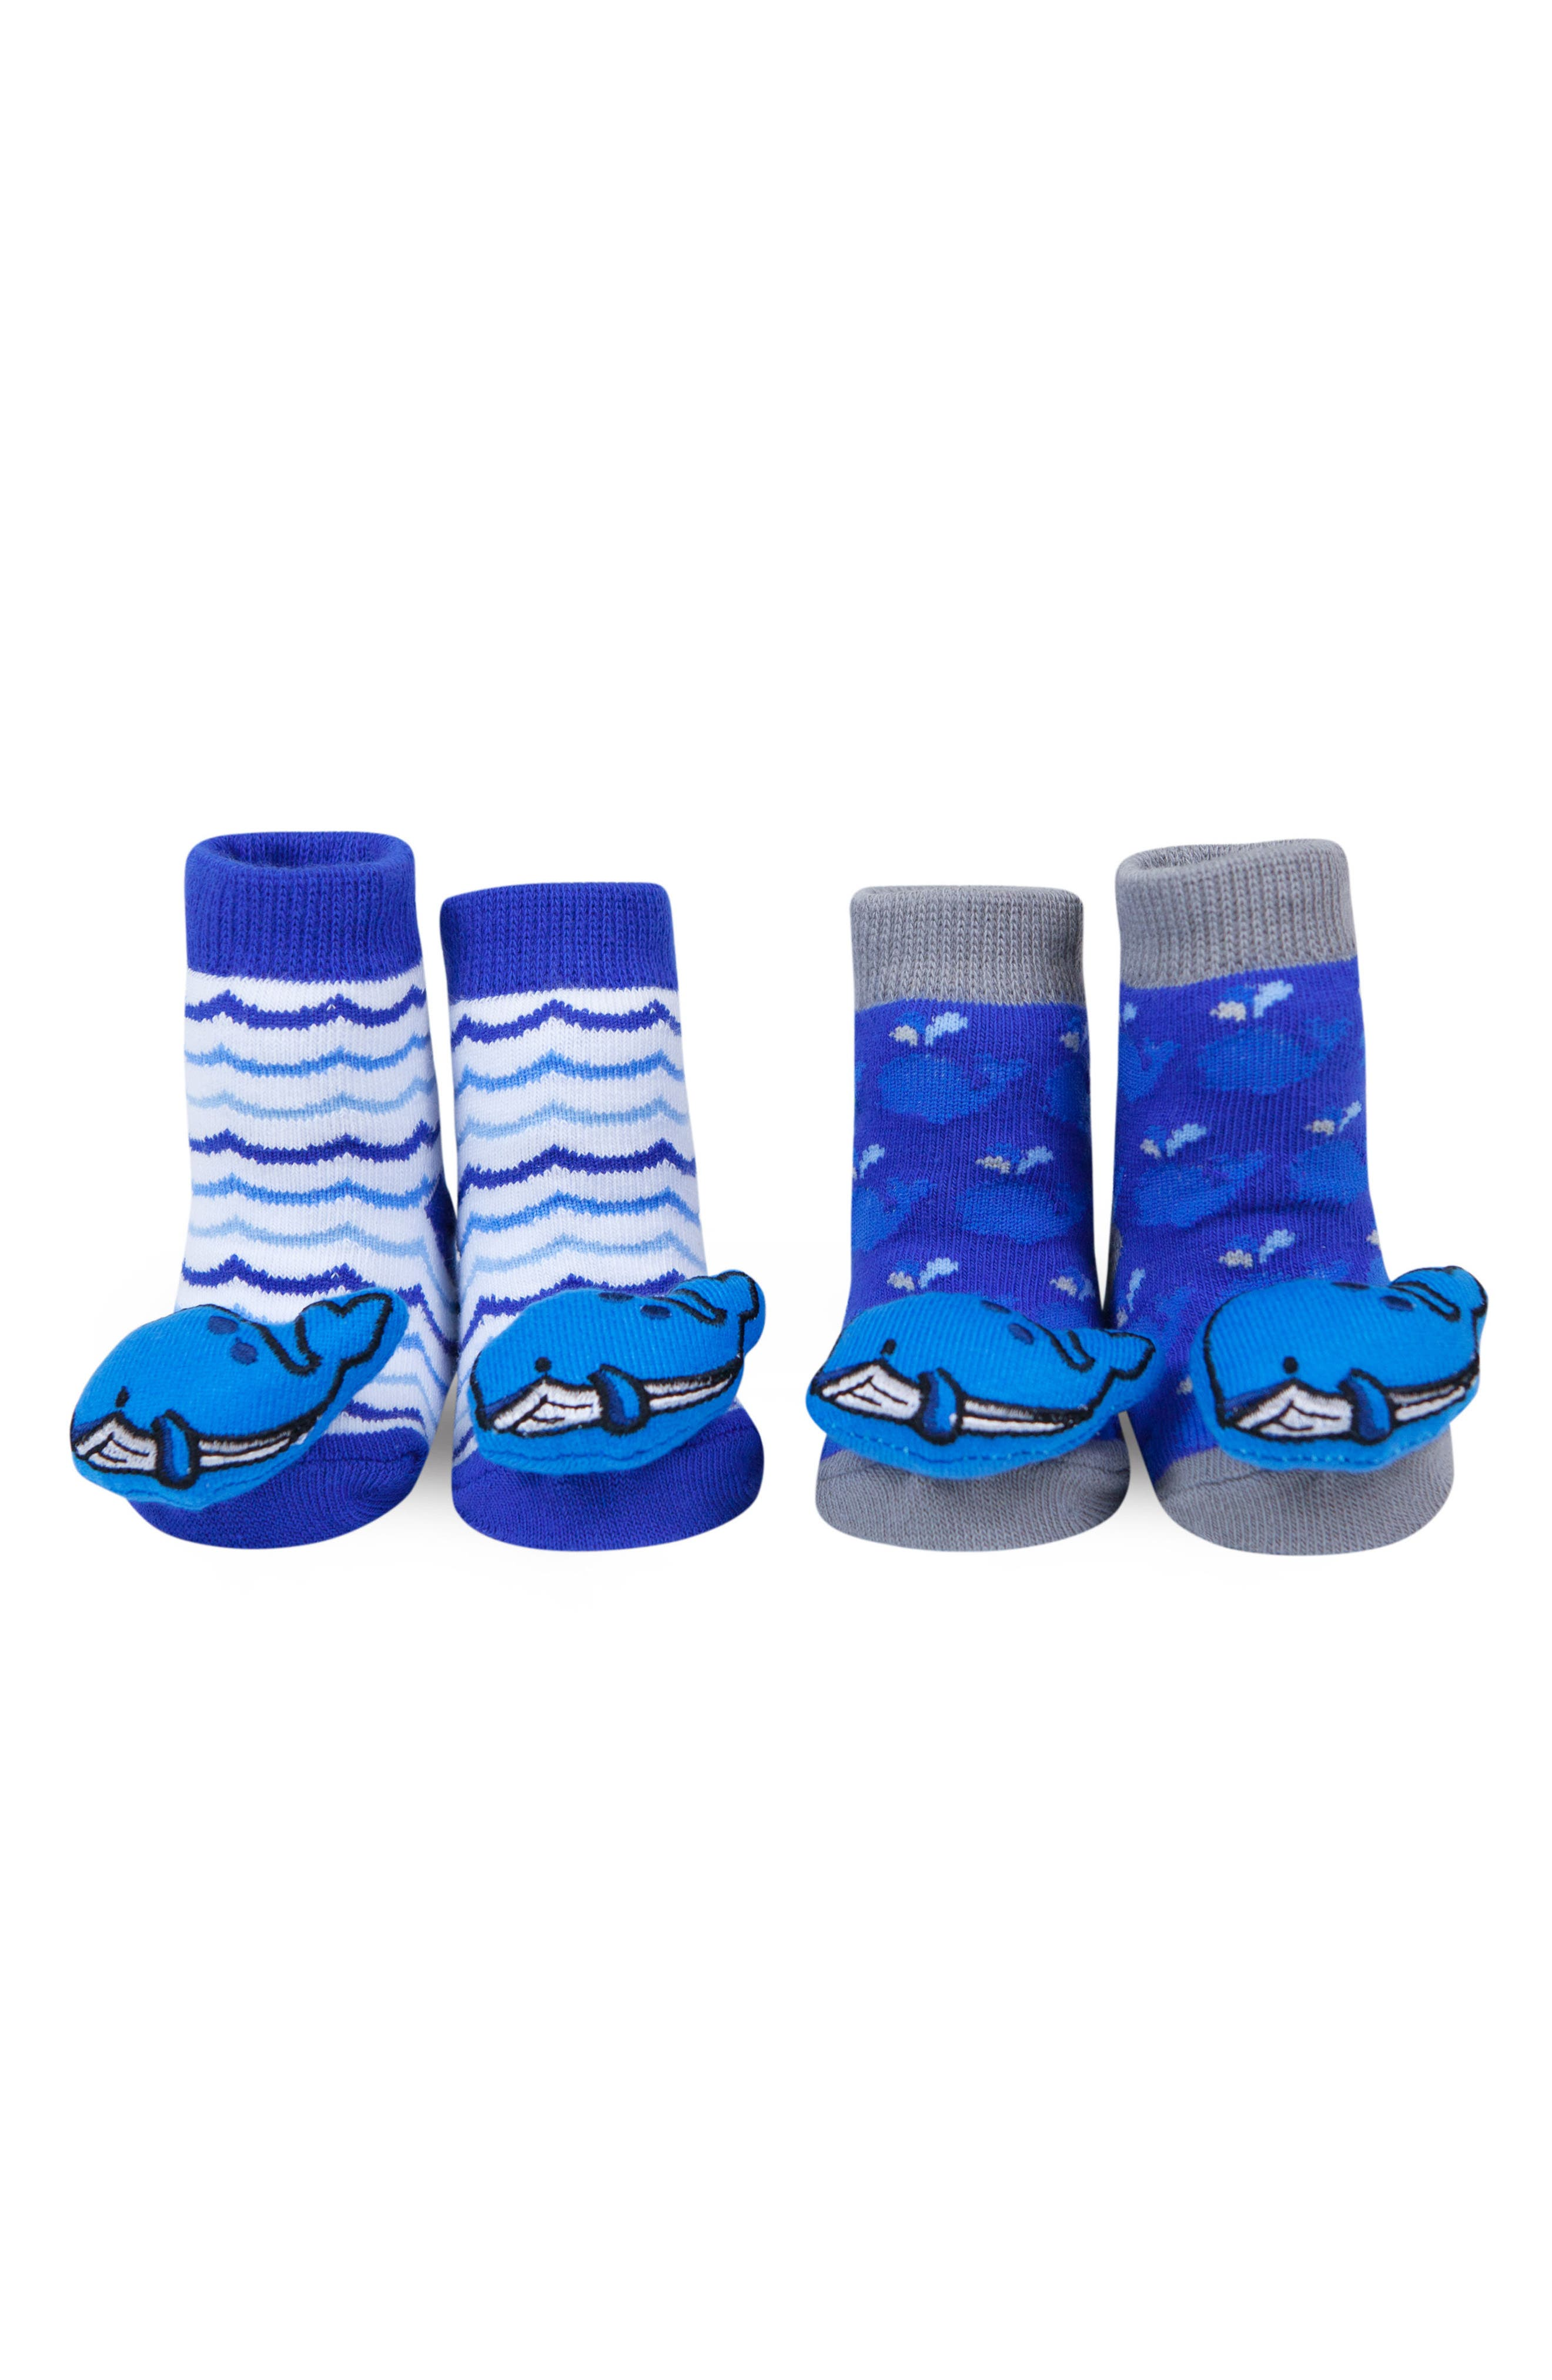 & Friends Whales 2-Pack Rattle Socks,                             Main thumbnail 1, color,